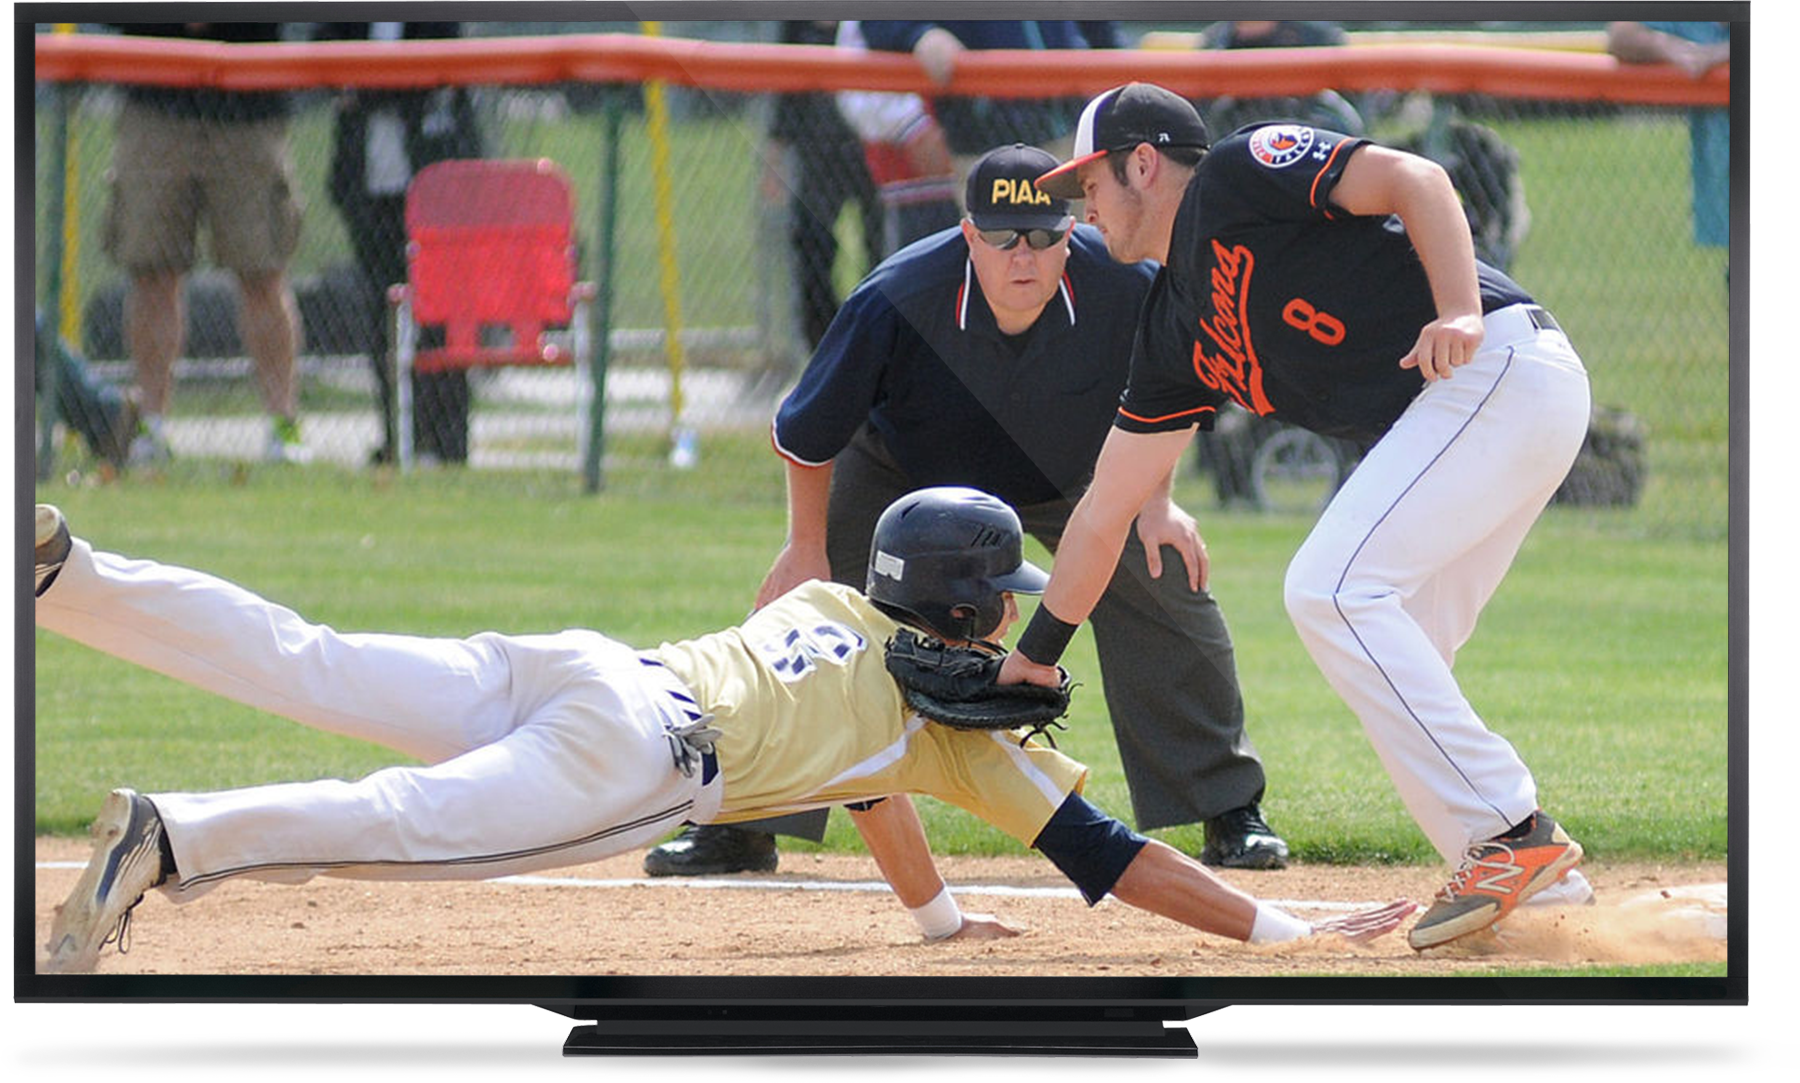 Watch Pennsbury High School baseball live on WBCB Sports